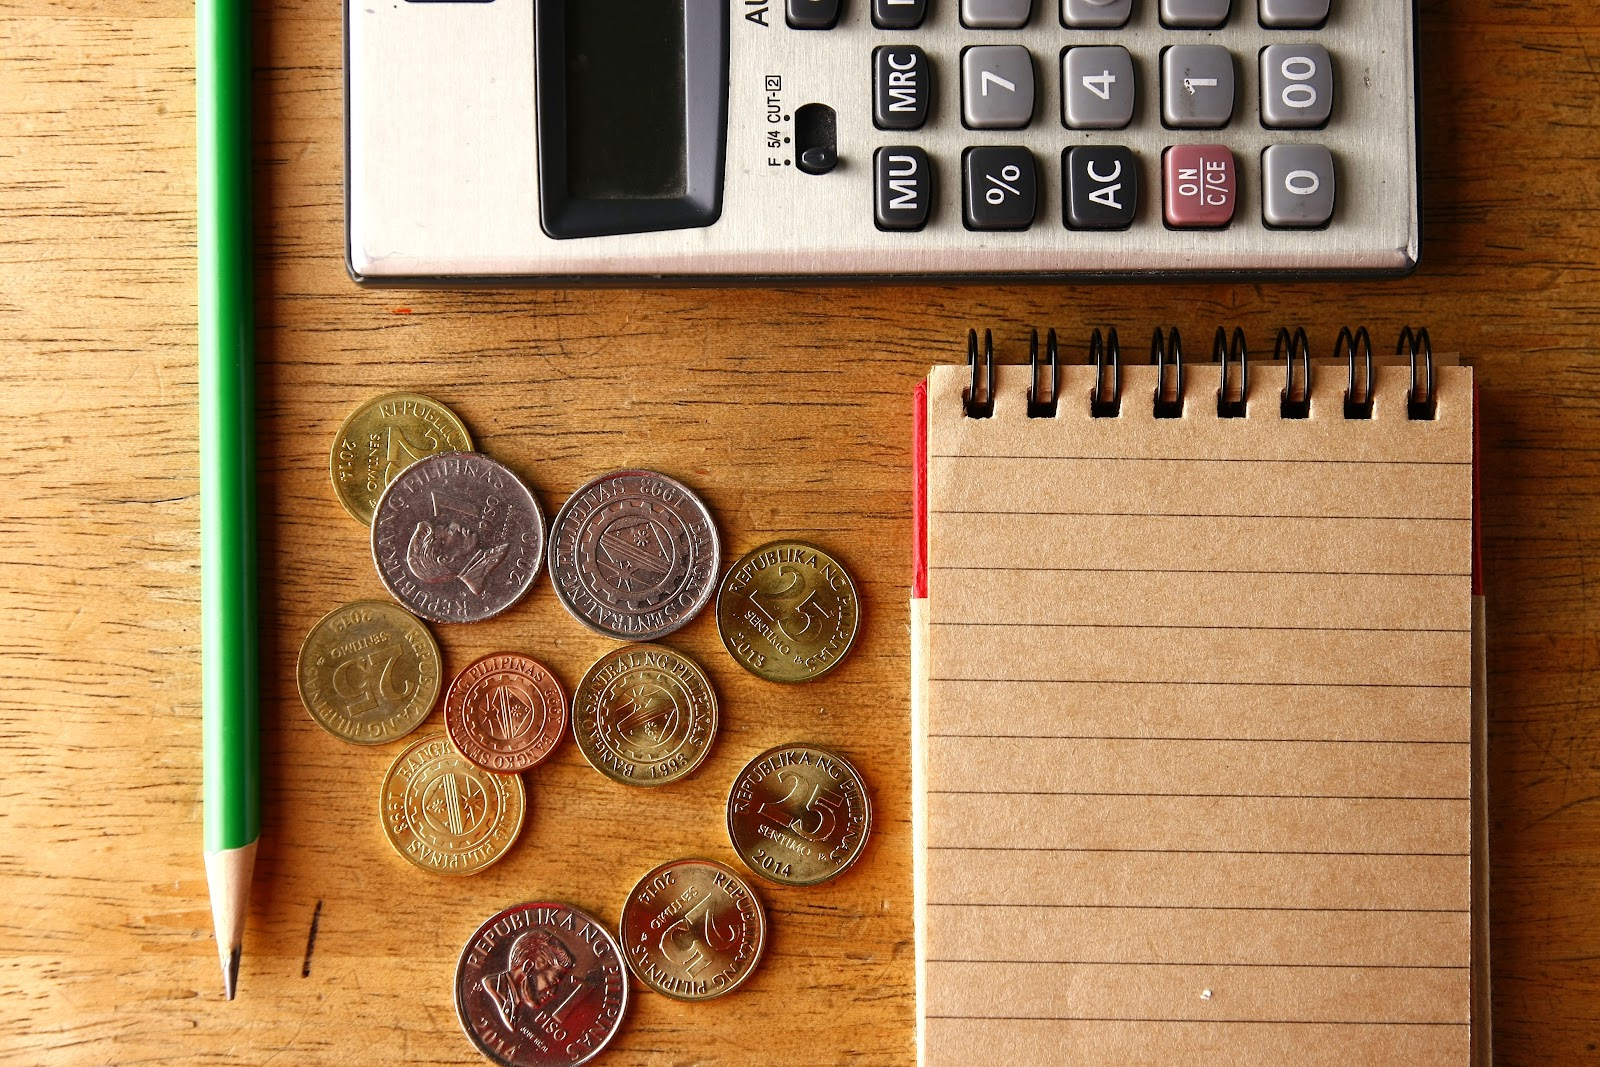 Coins, pencil, notebook, and calculator